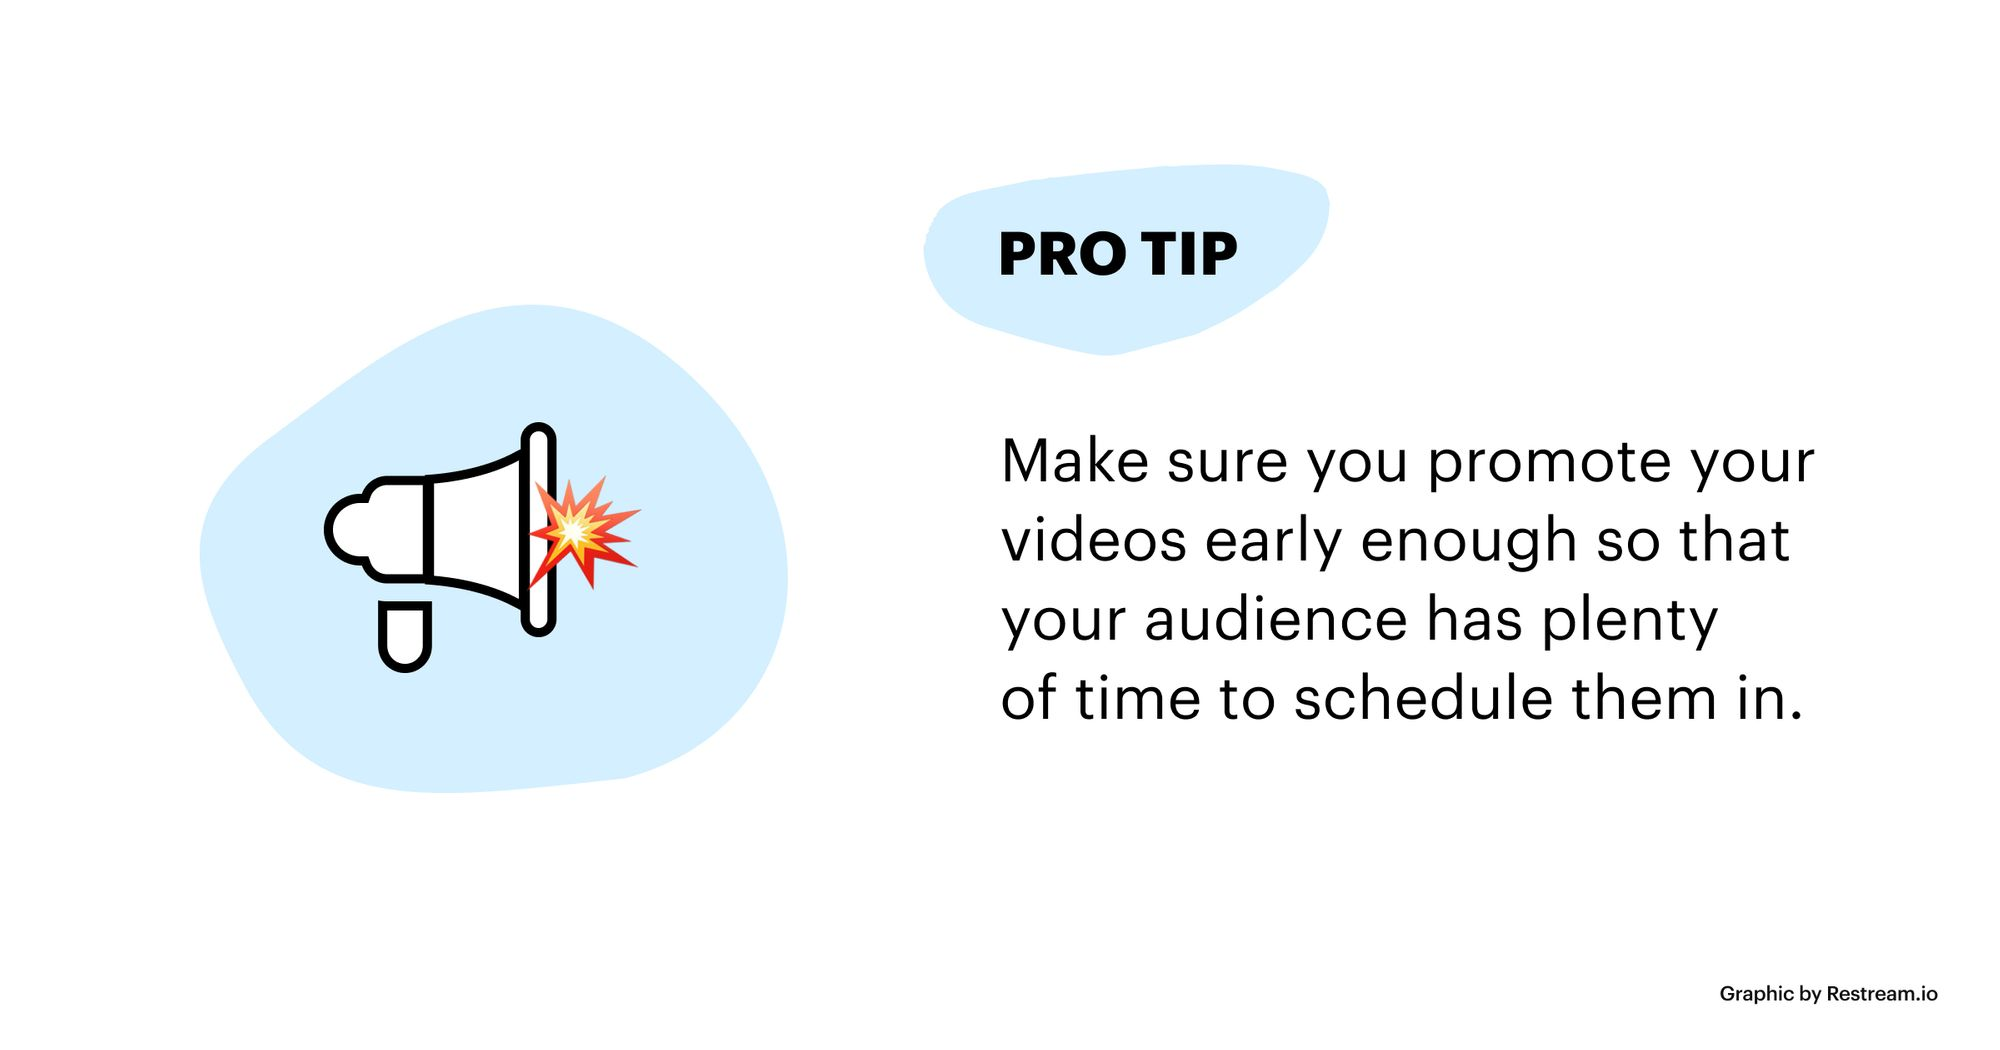 Promote your videos early enough so that your audience has plenty of time to schedule them in.